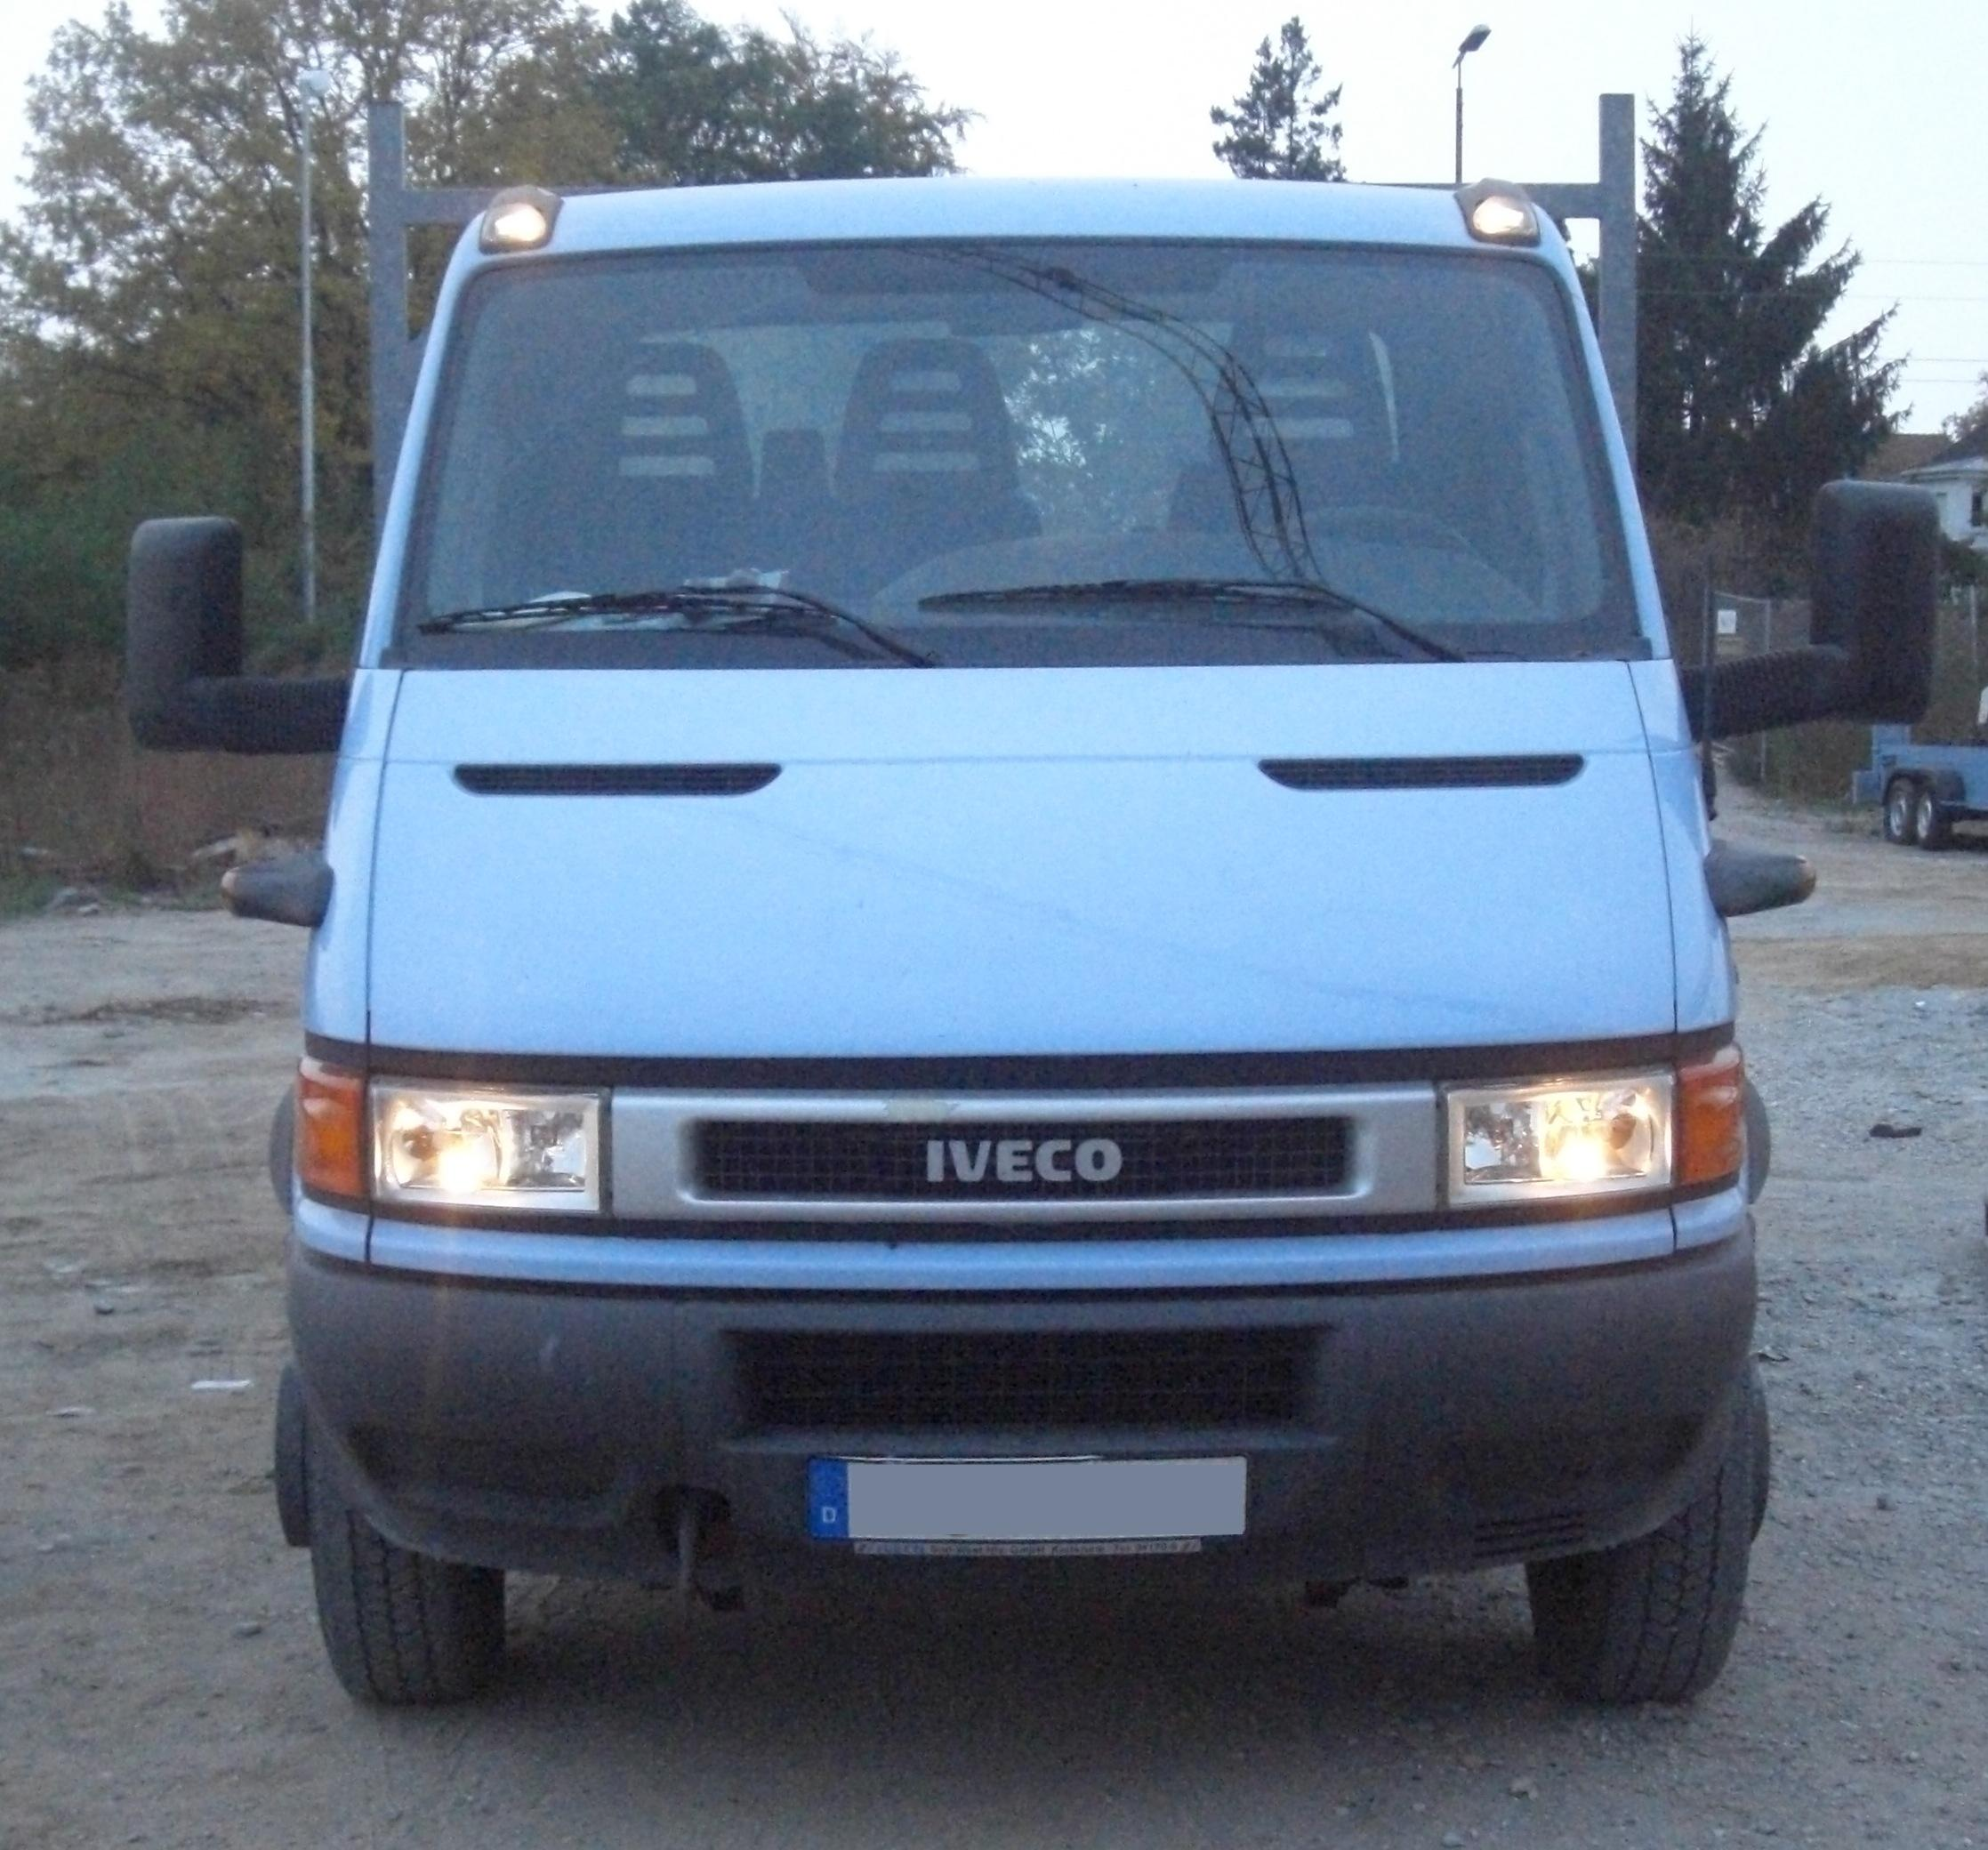 Iveco daily 2007 photo - 1